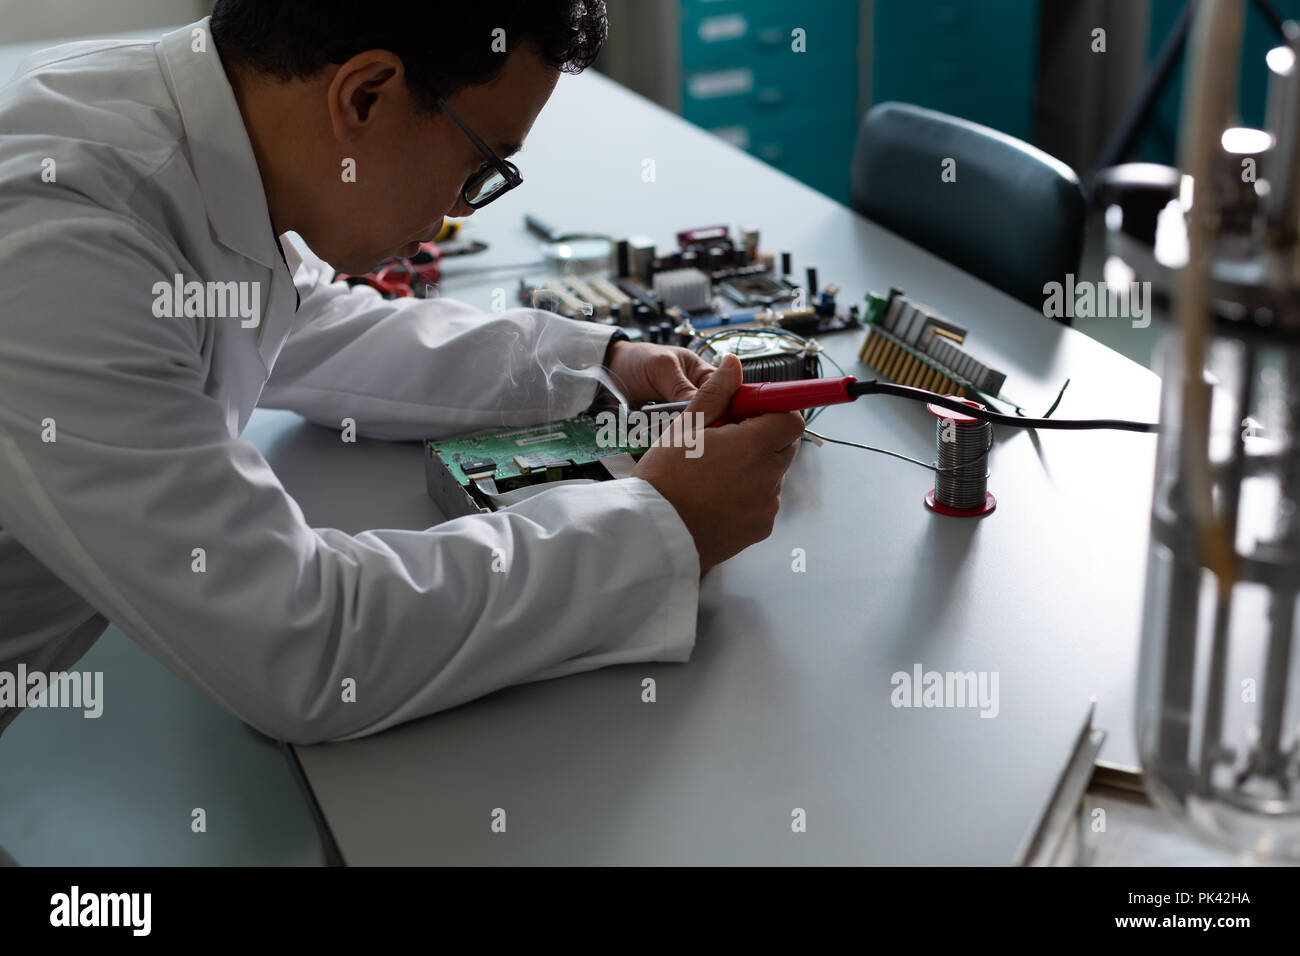 Male scientist experimenting on circuit board - Stock Image